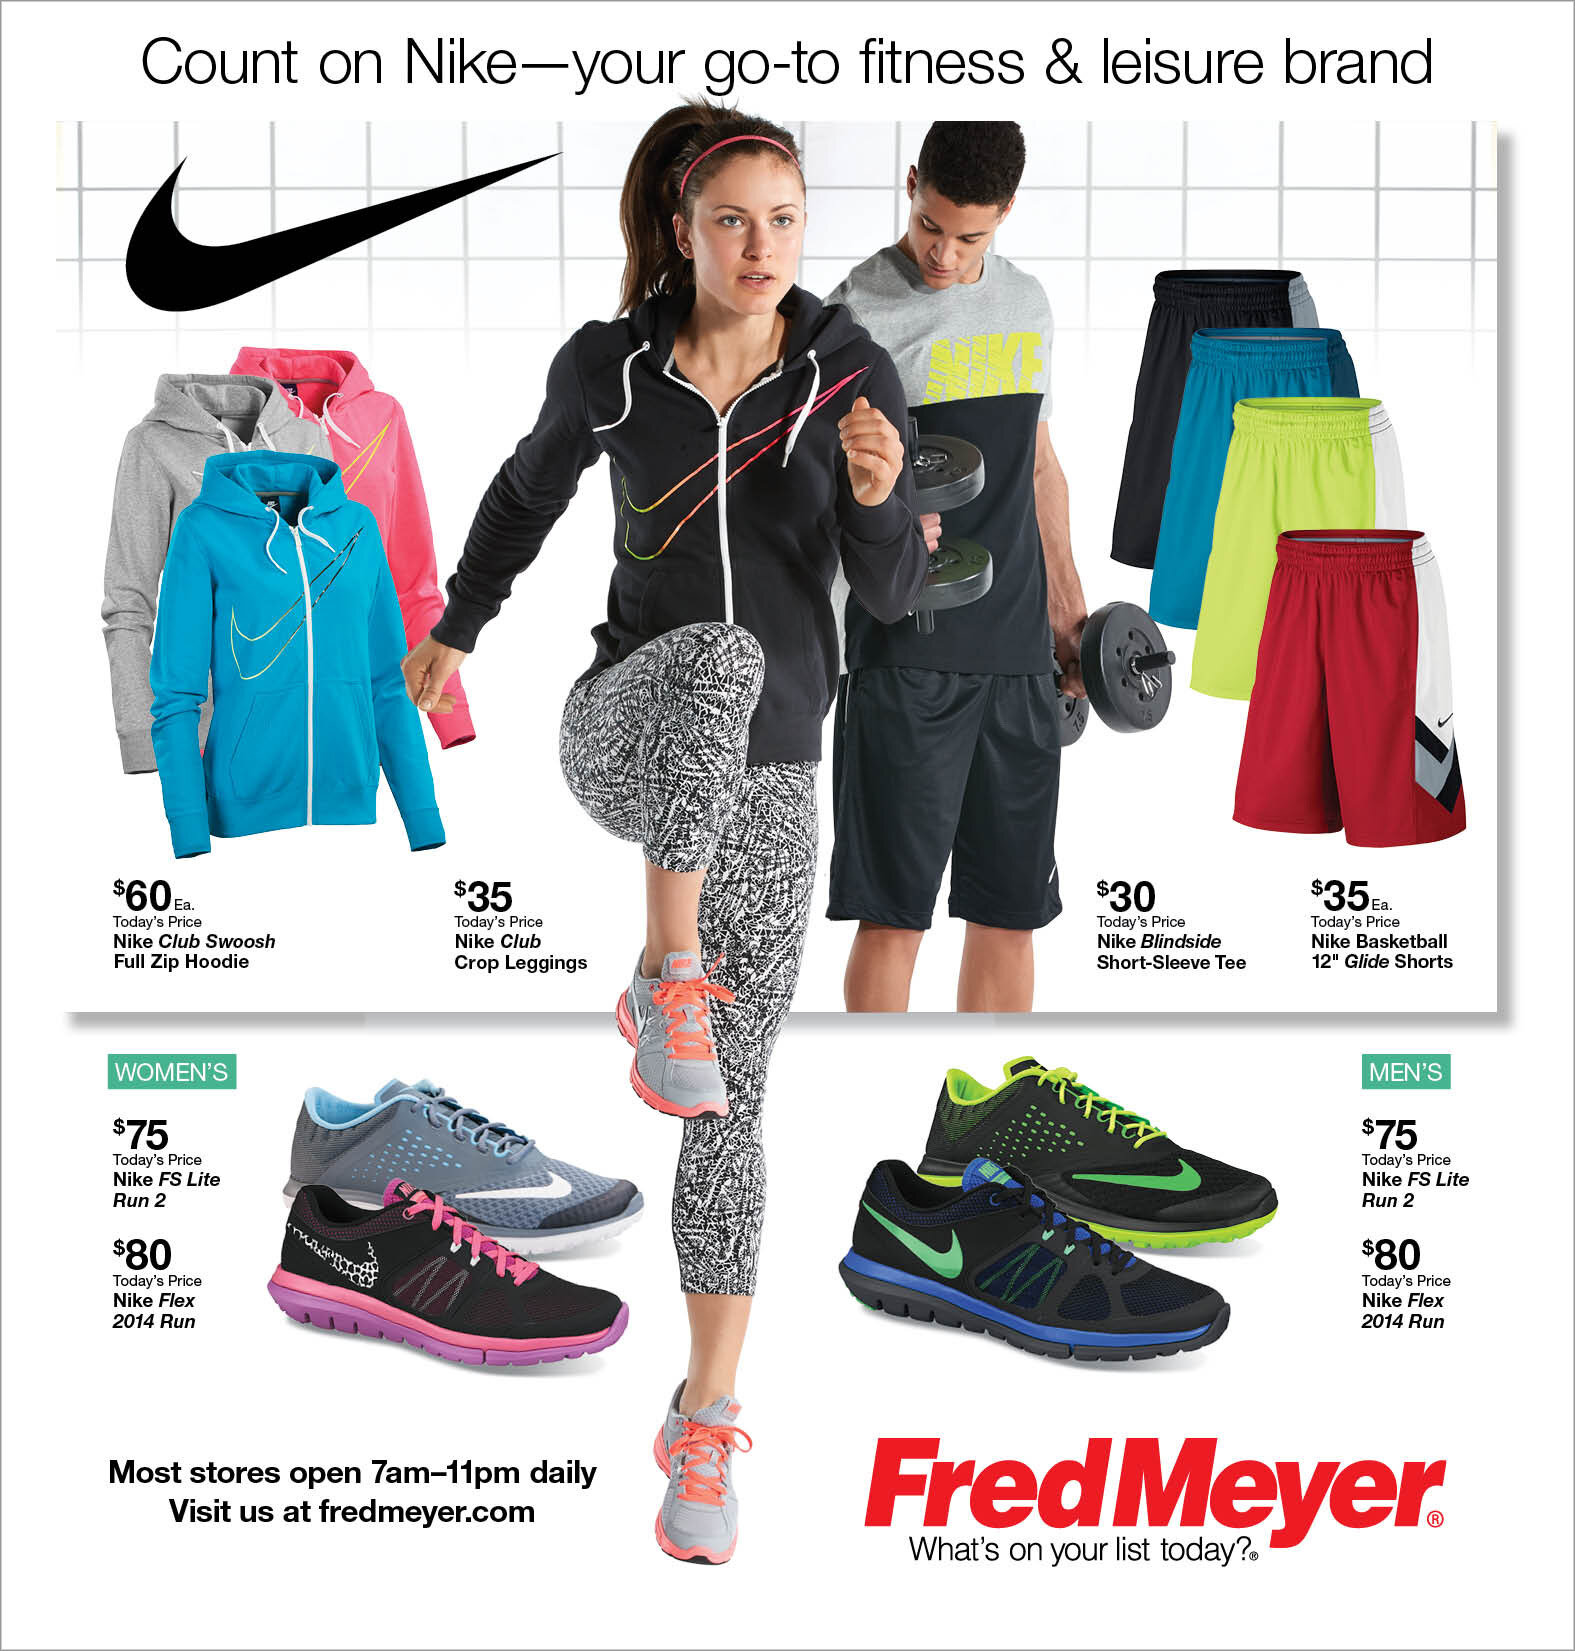 fred meyer nike shoes